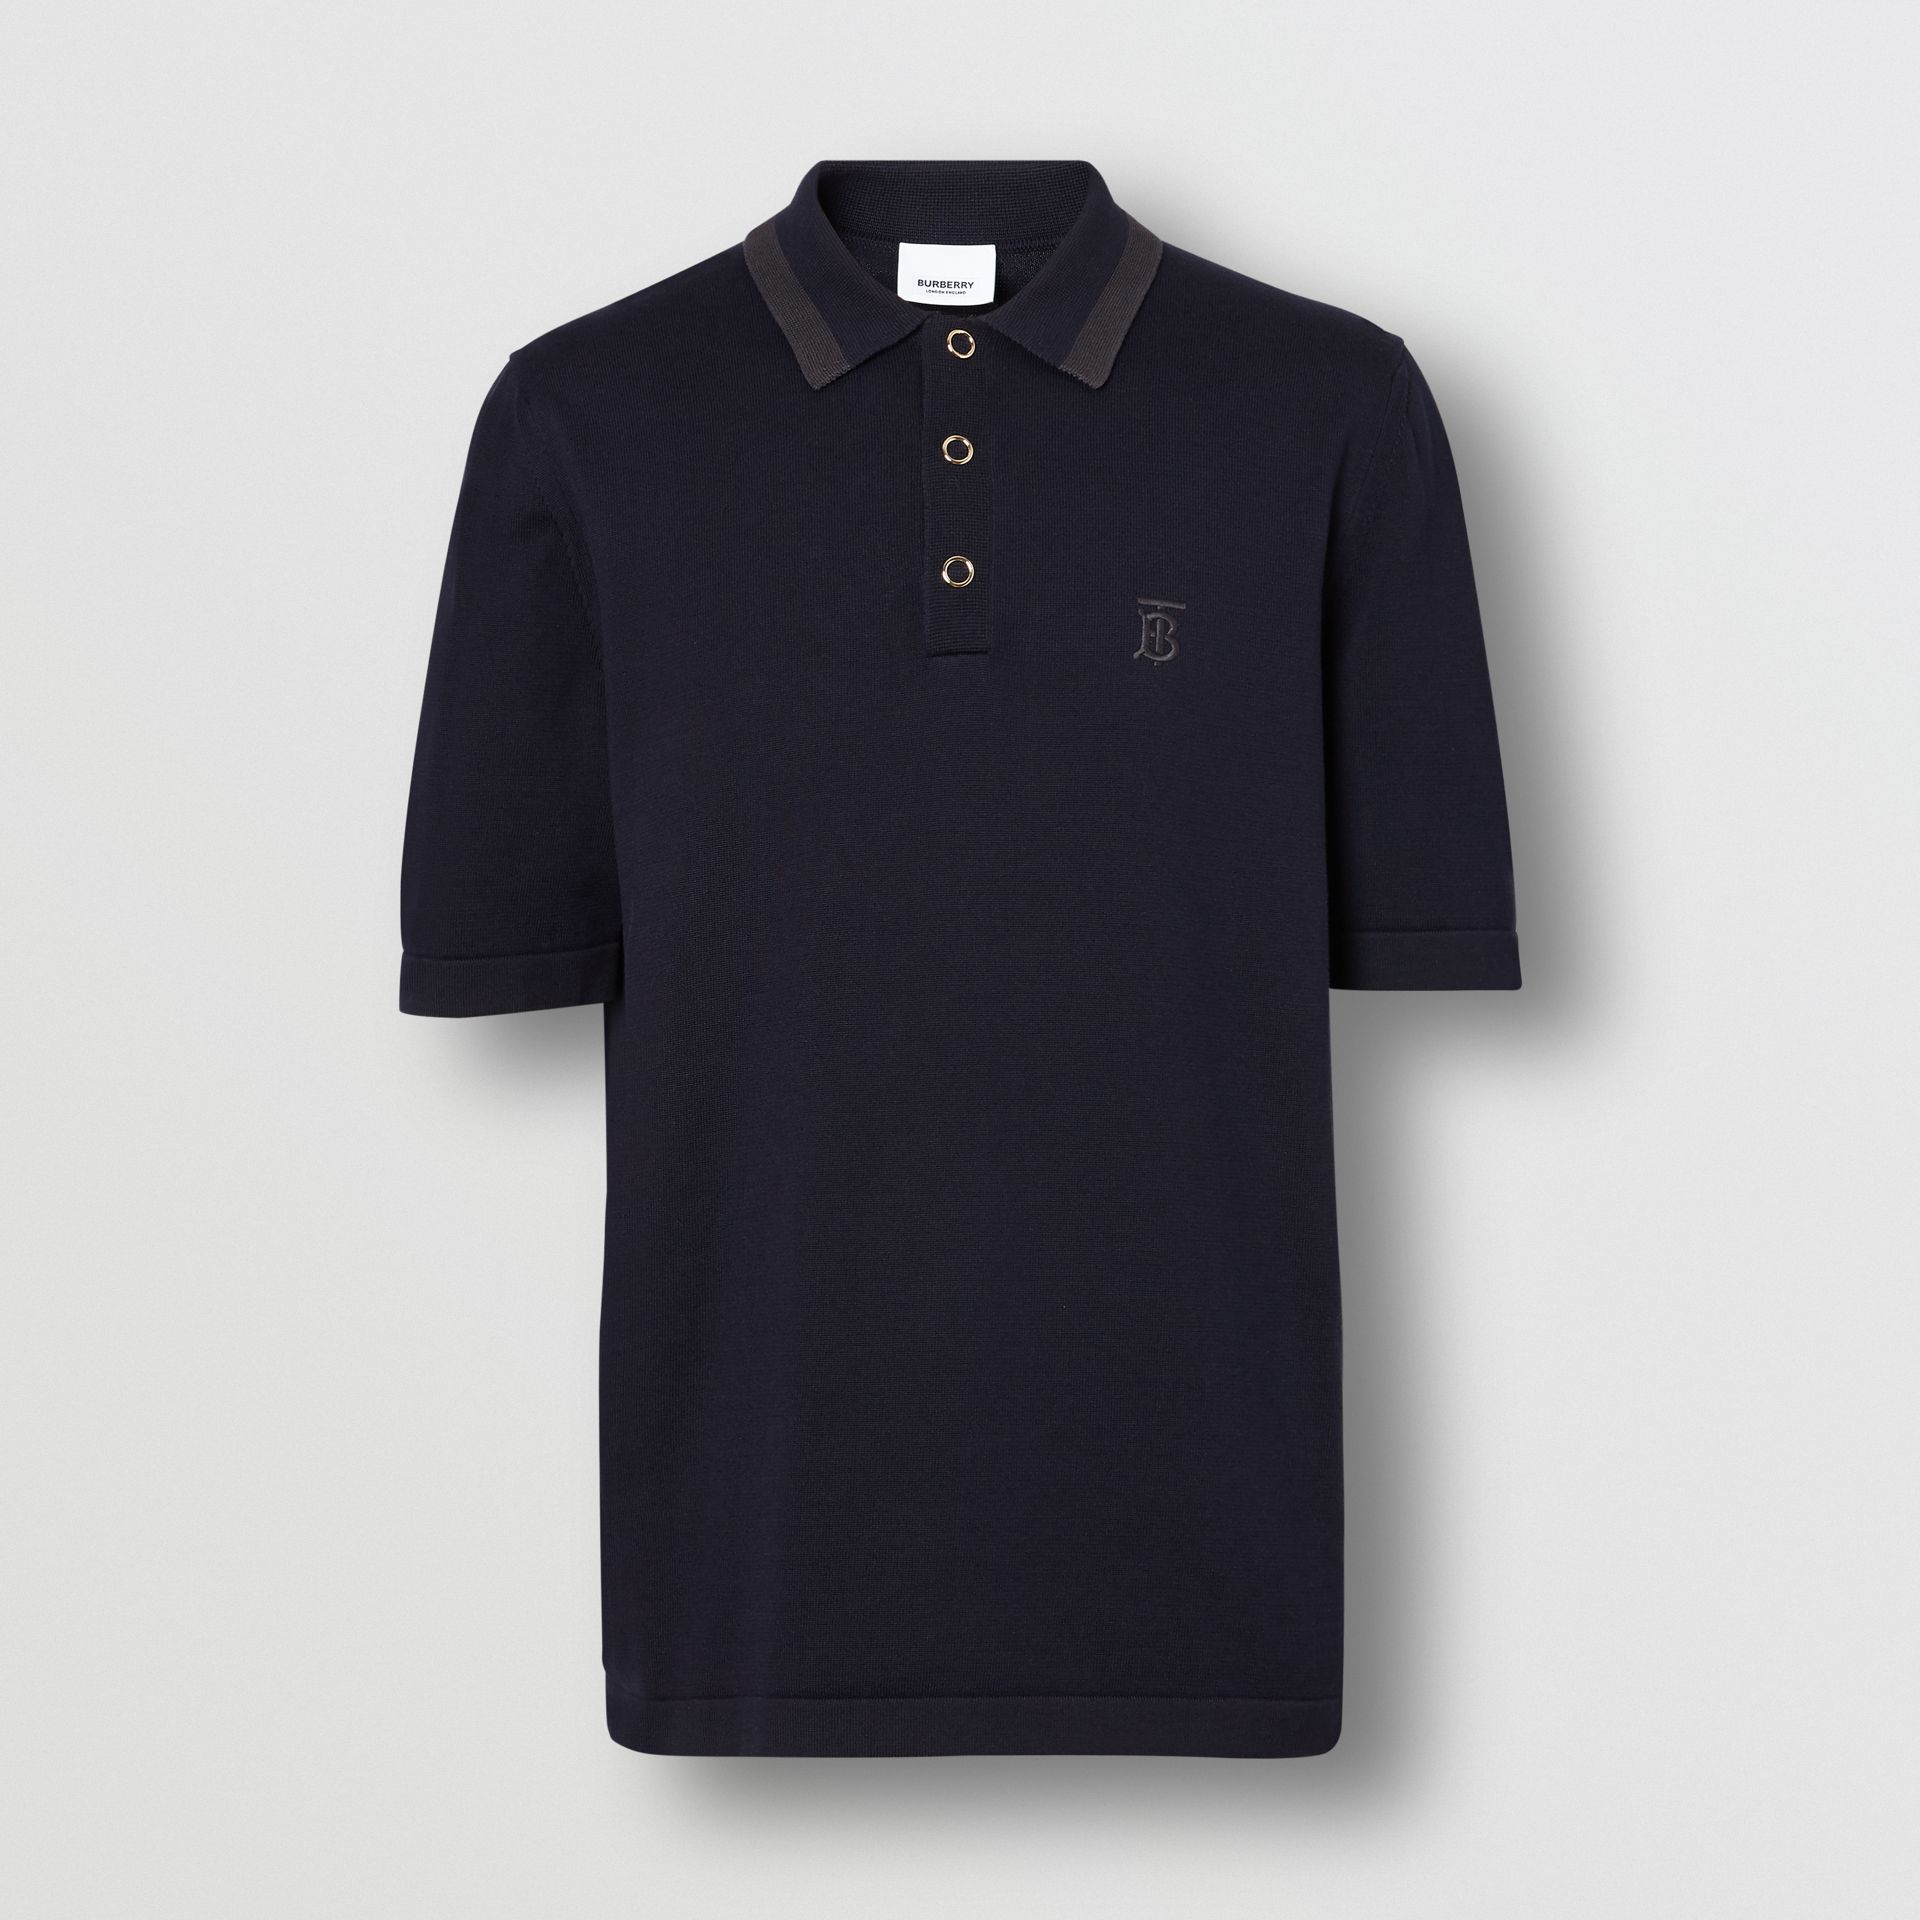 Monogram Motif Cotton Polo Shirt in Navy - Men | Burberry - gallery image 3